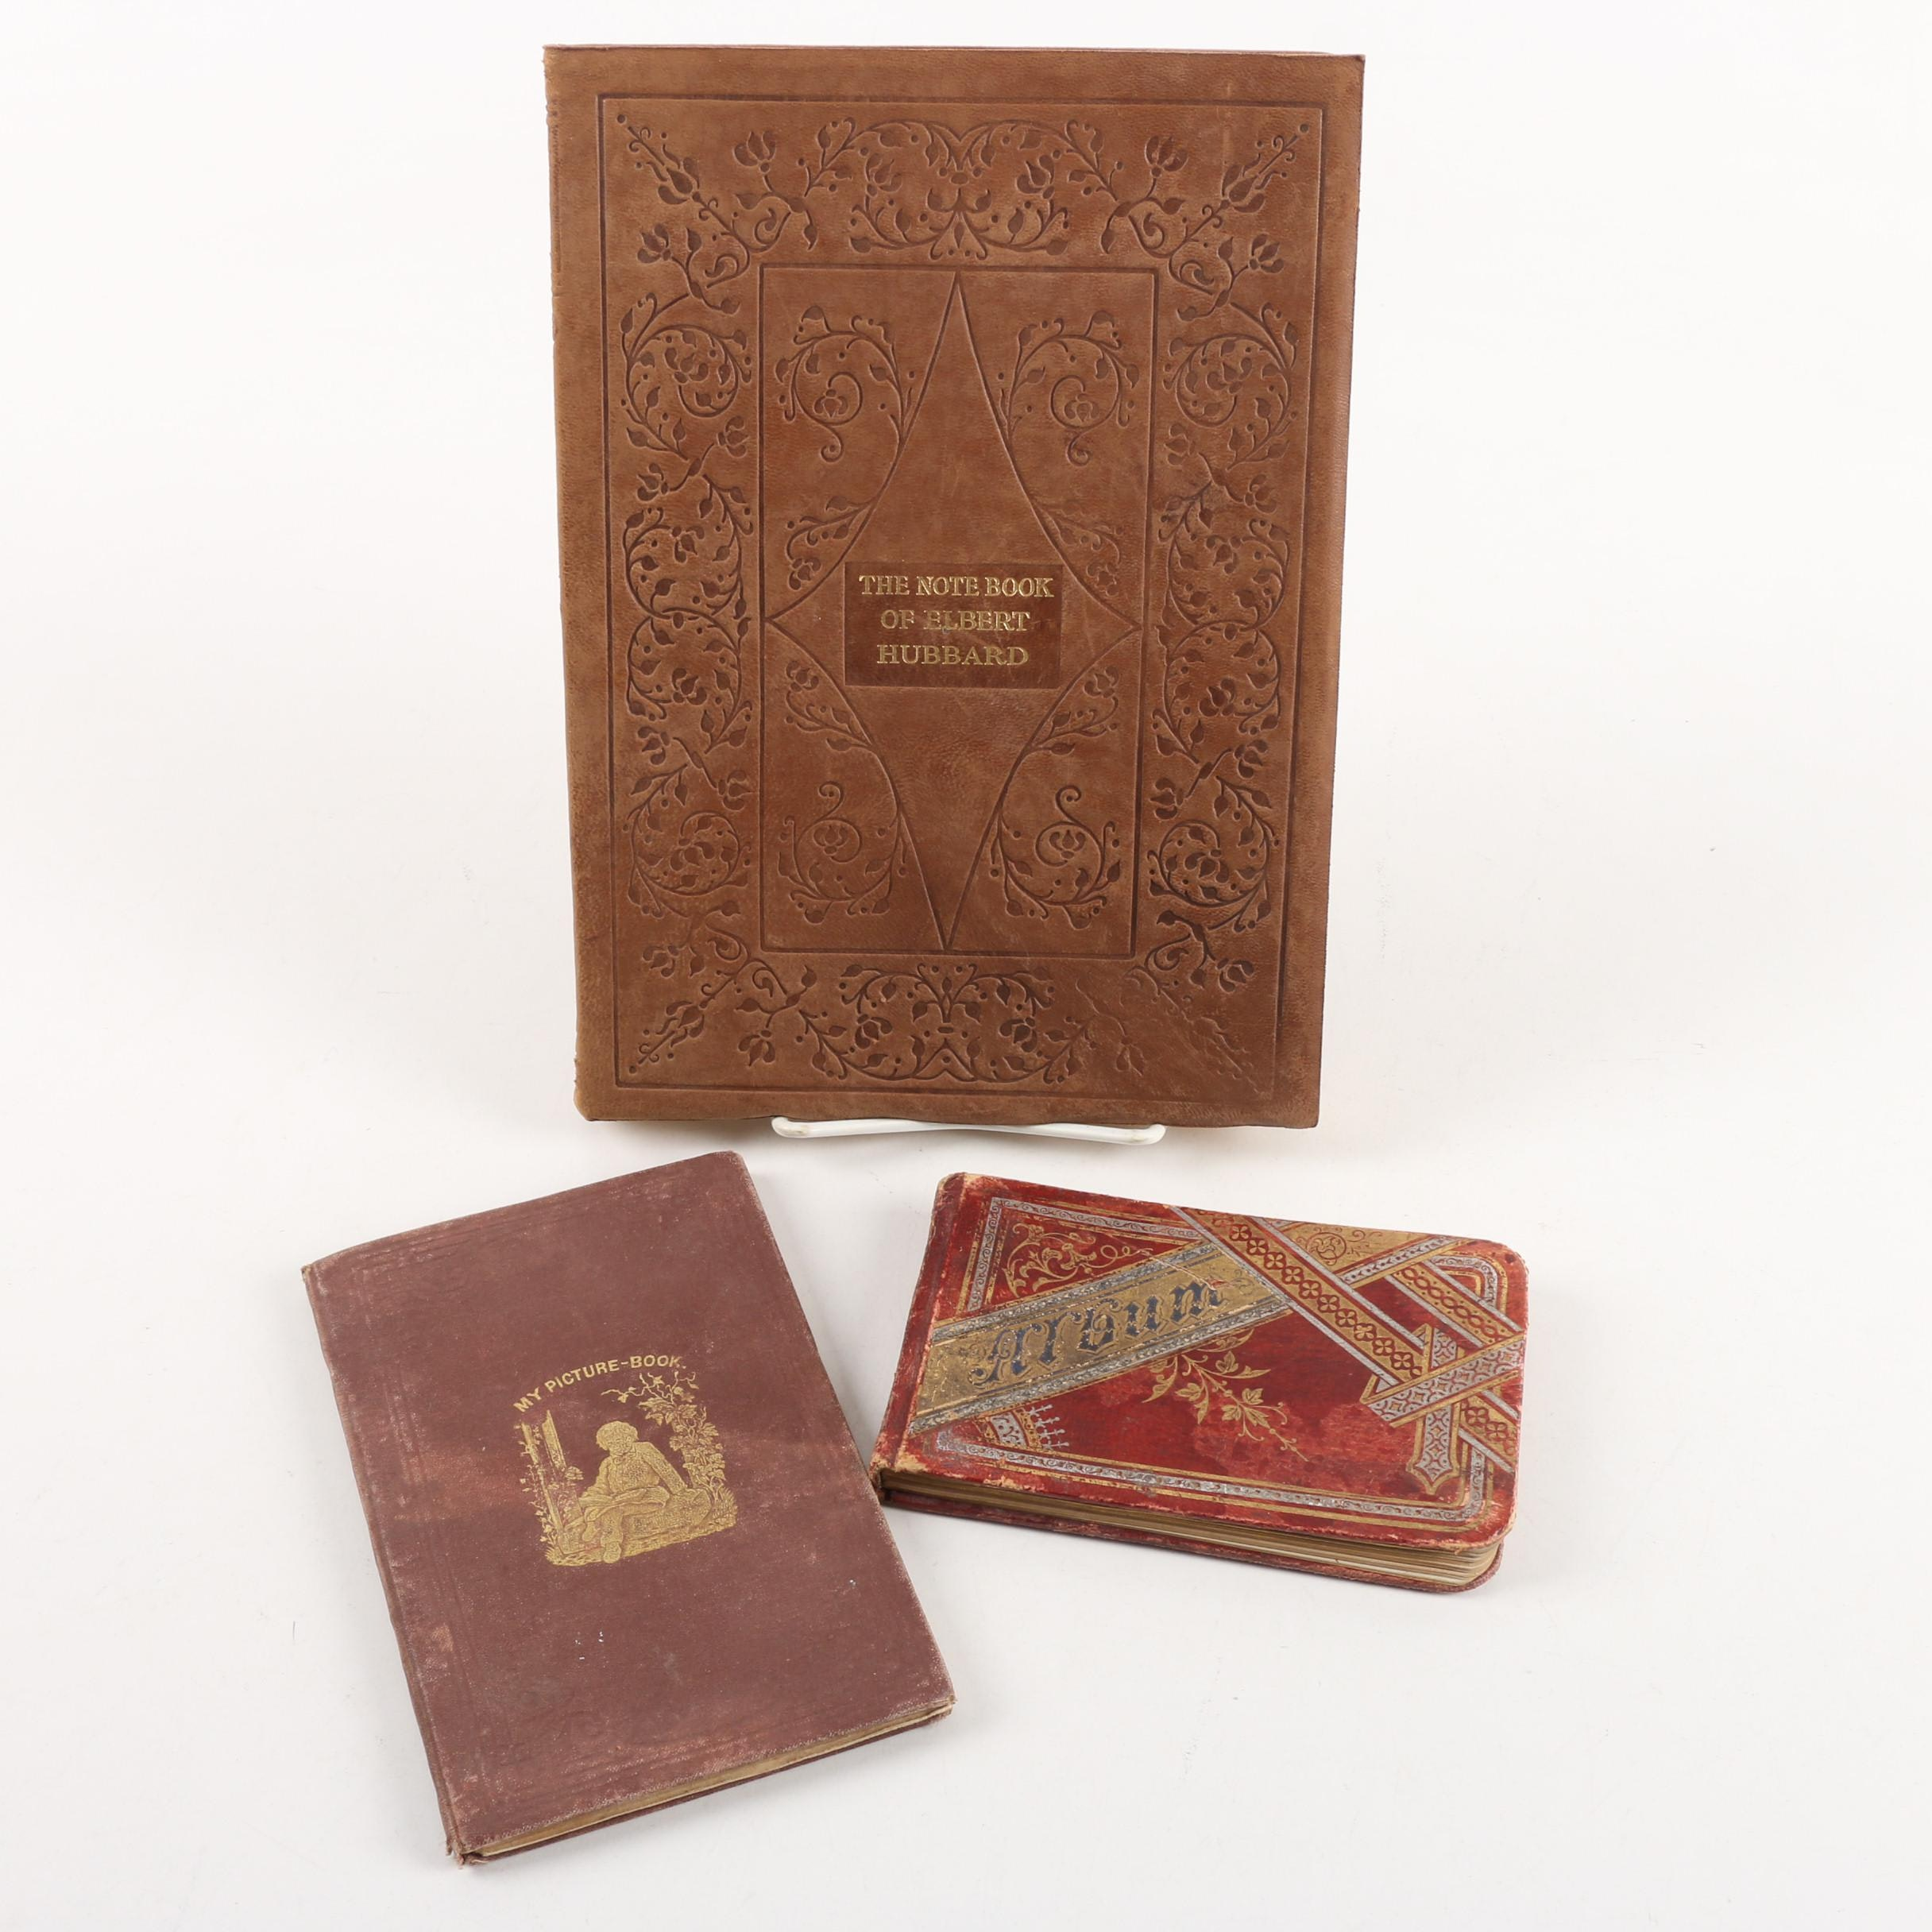 Antique Autograph Book and Other Books